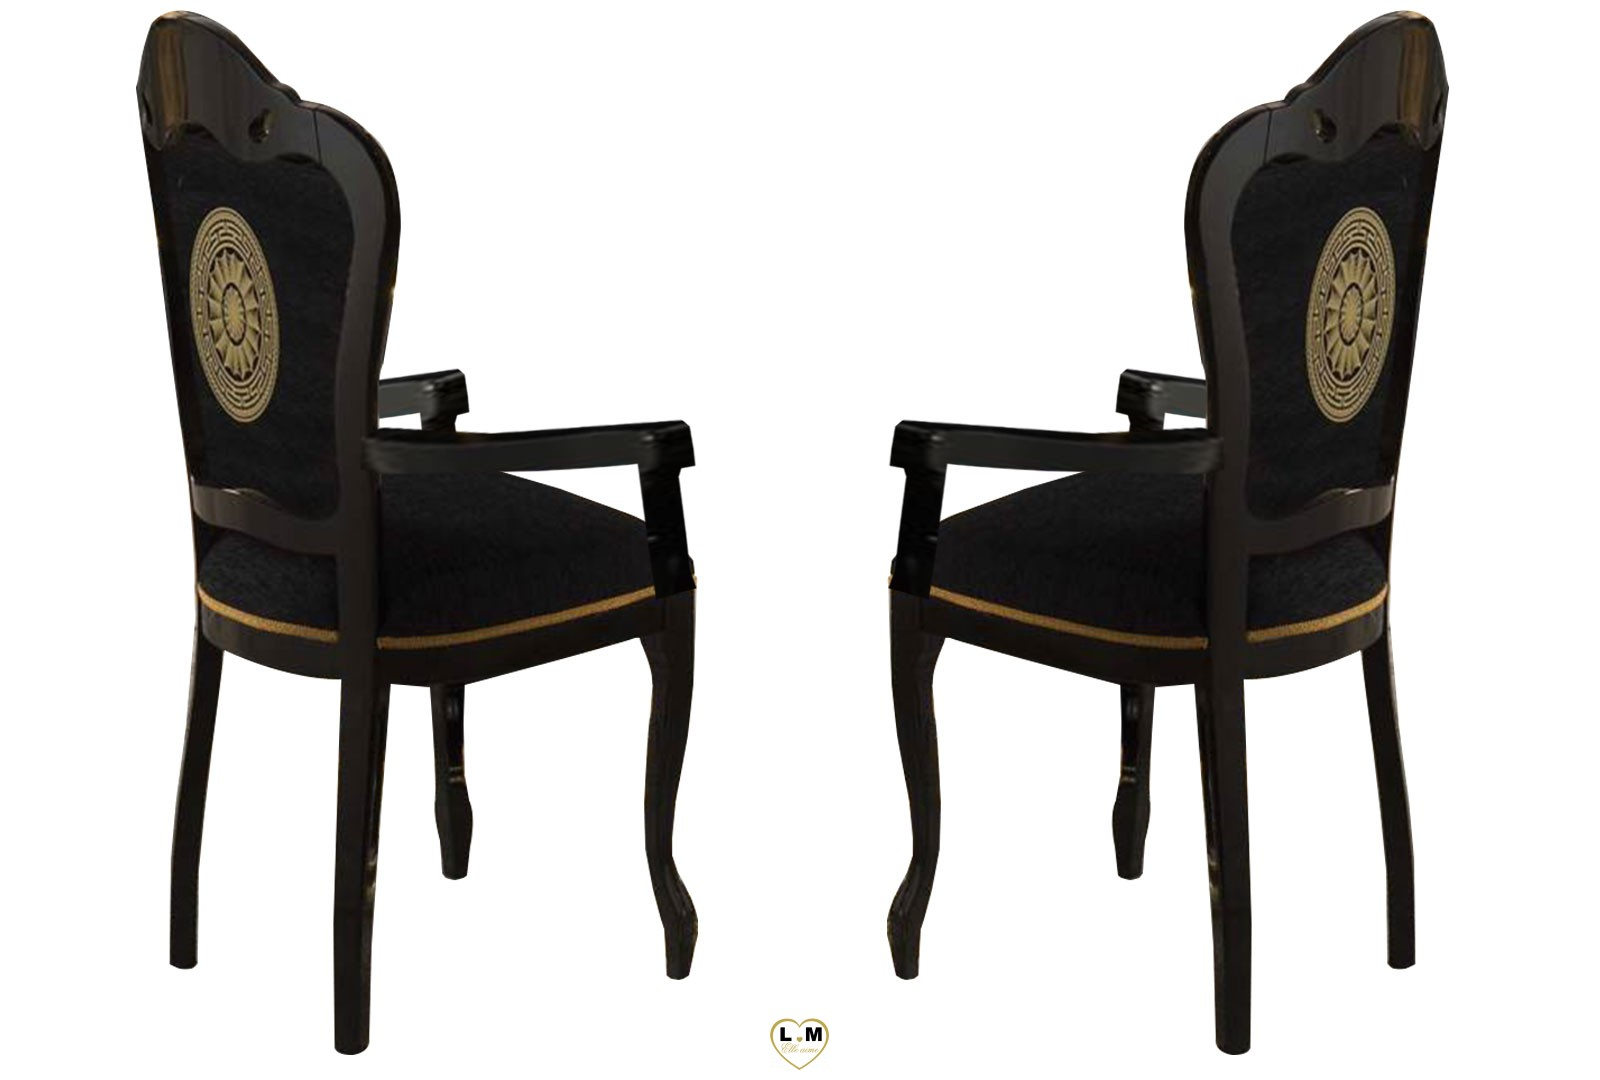 versus laque noir et dore salle a manger baroque la chaise accoudoir lignemeuble com. Black Bedroom Furniture Sets. Home Design Ideas